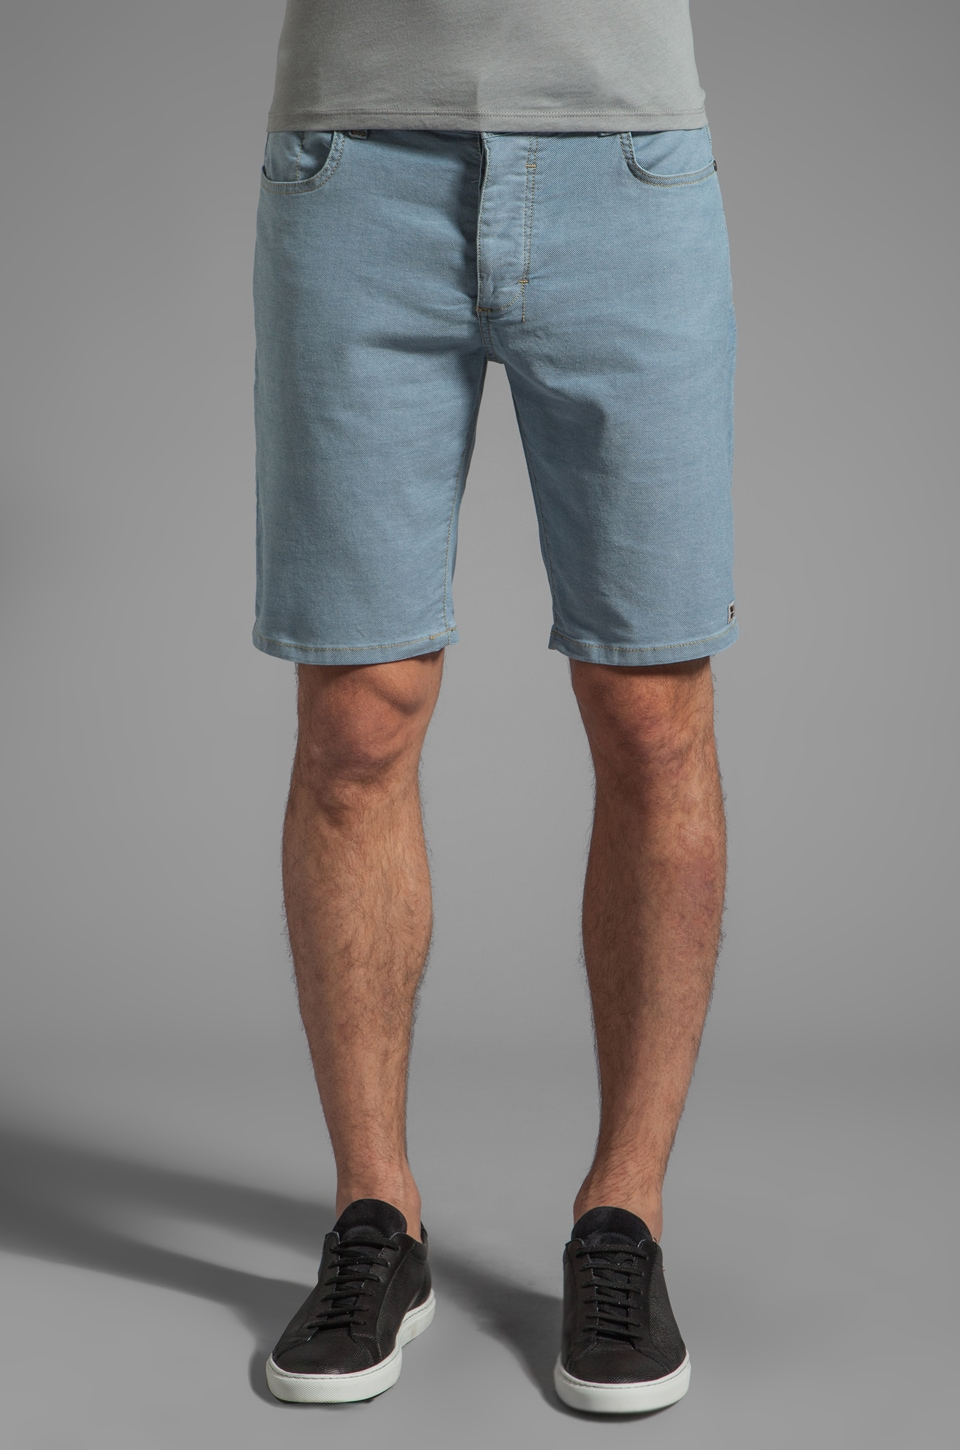 Insight Oh Zone Denim Short in Bleached Blue Classic